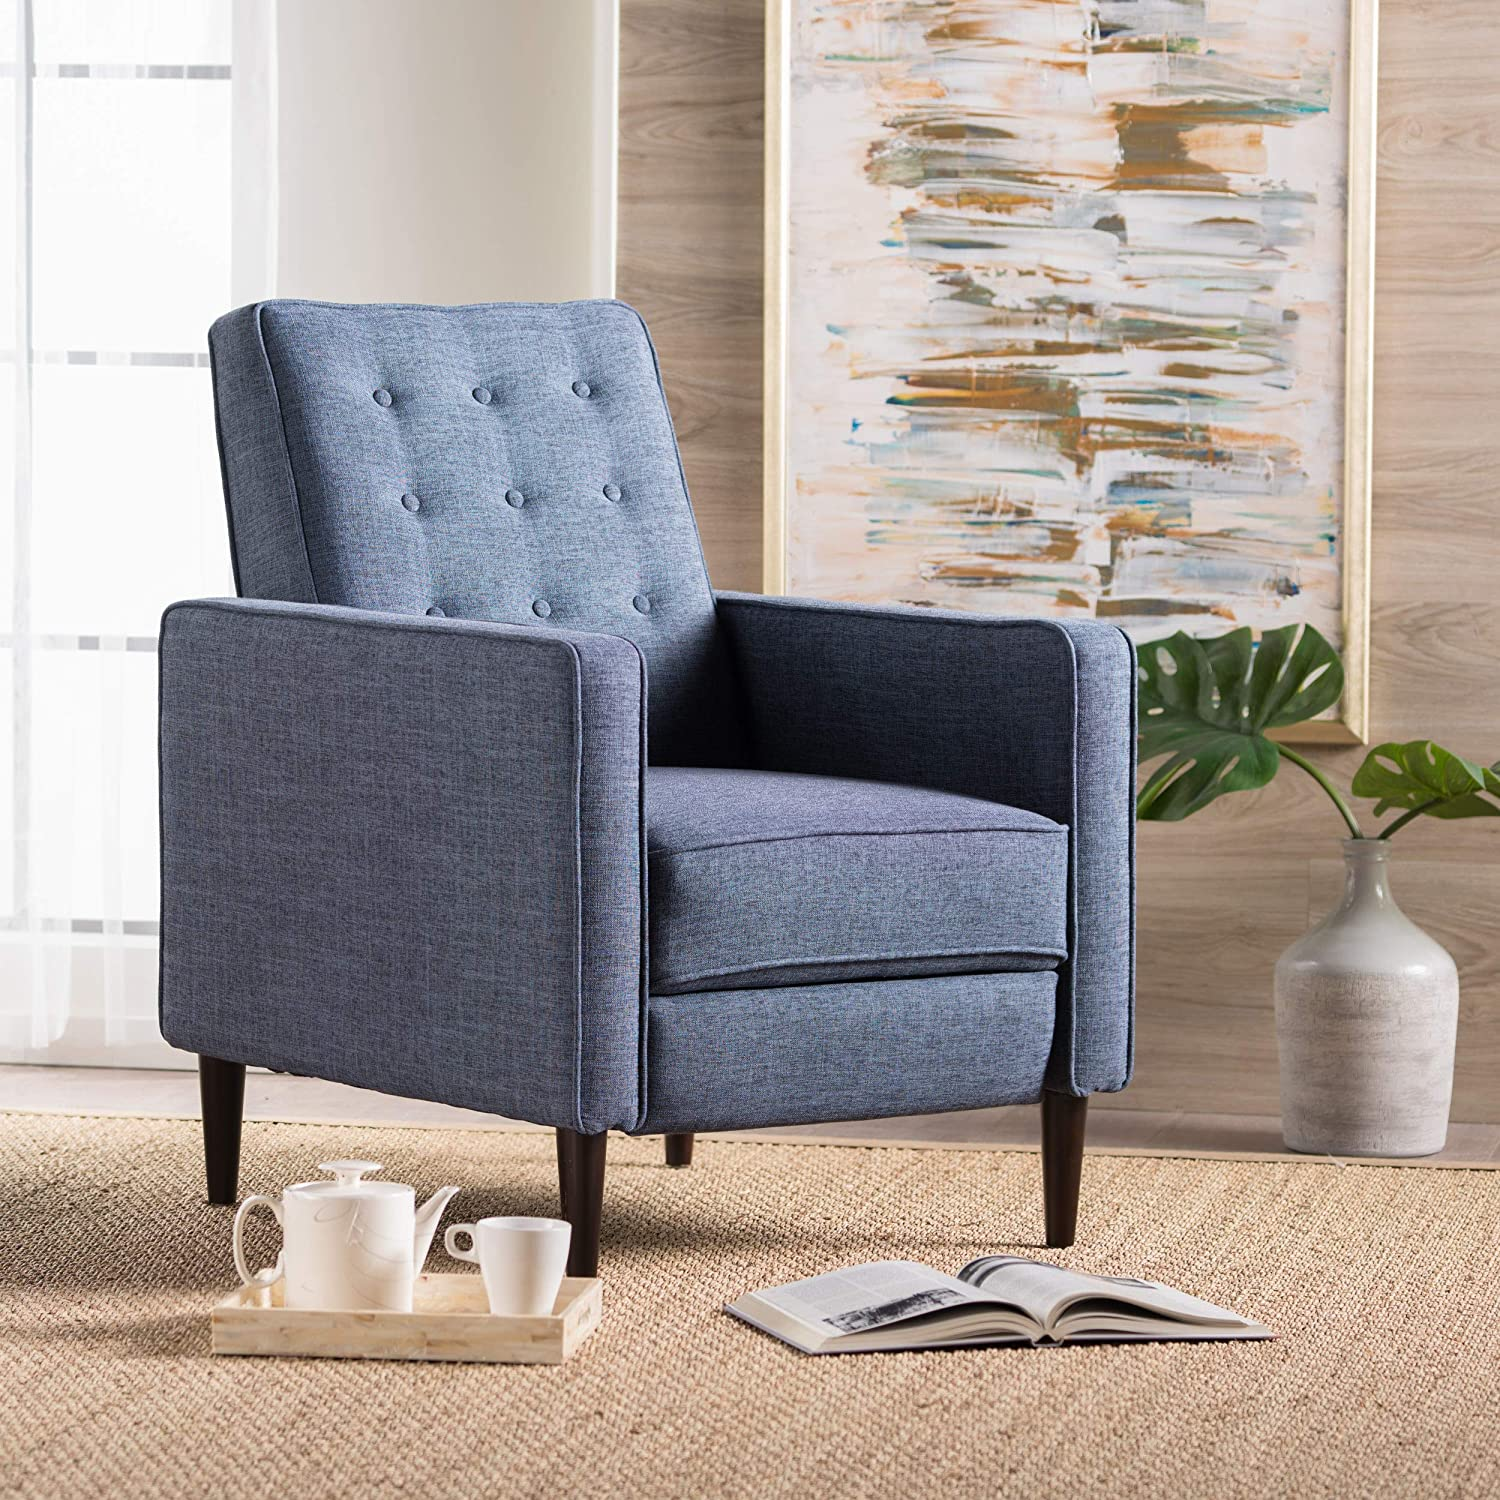 Macedonia Mid Century Modern Armchair - best armchairs for readers